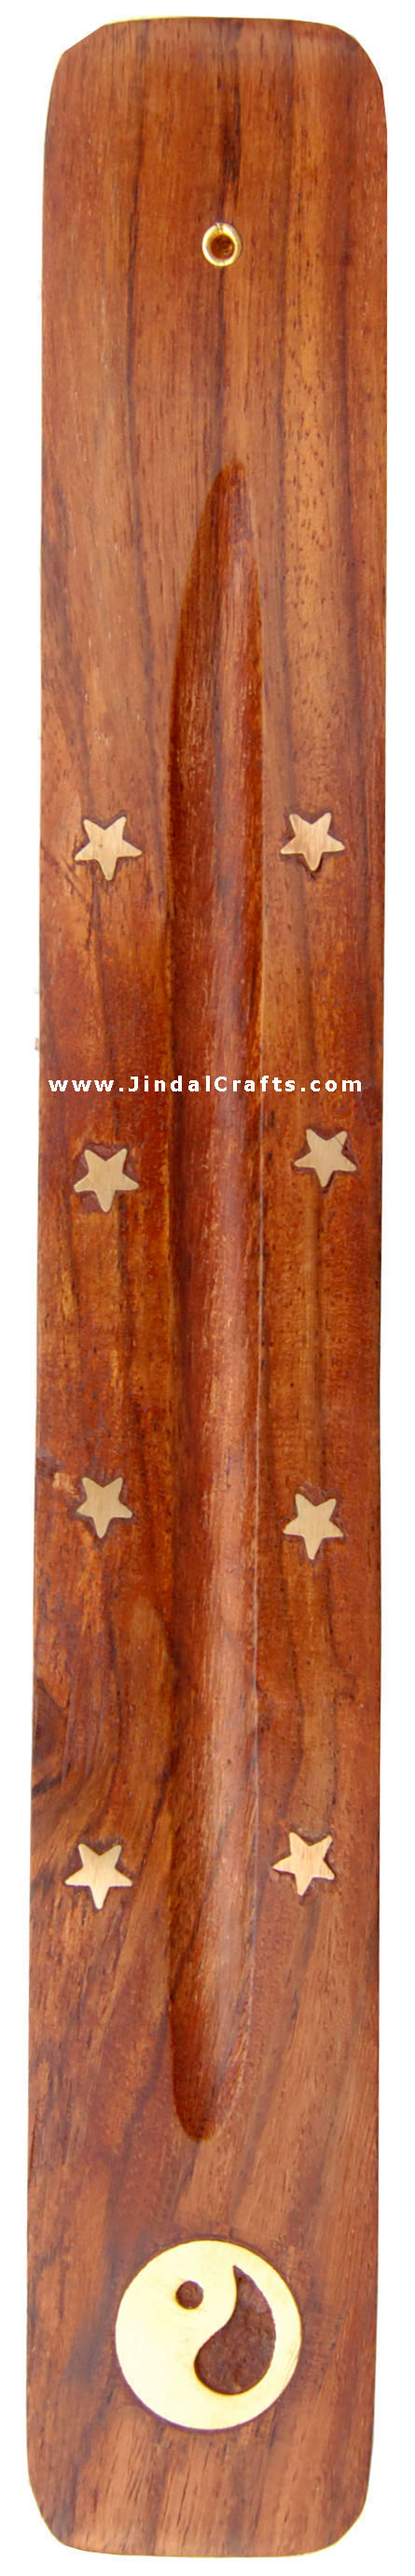 Incense Holder - Hand Carved Wooden Indian Art